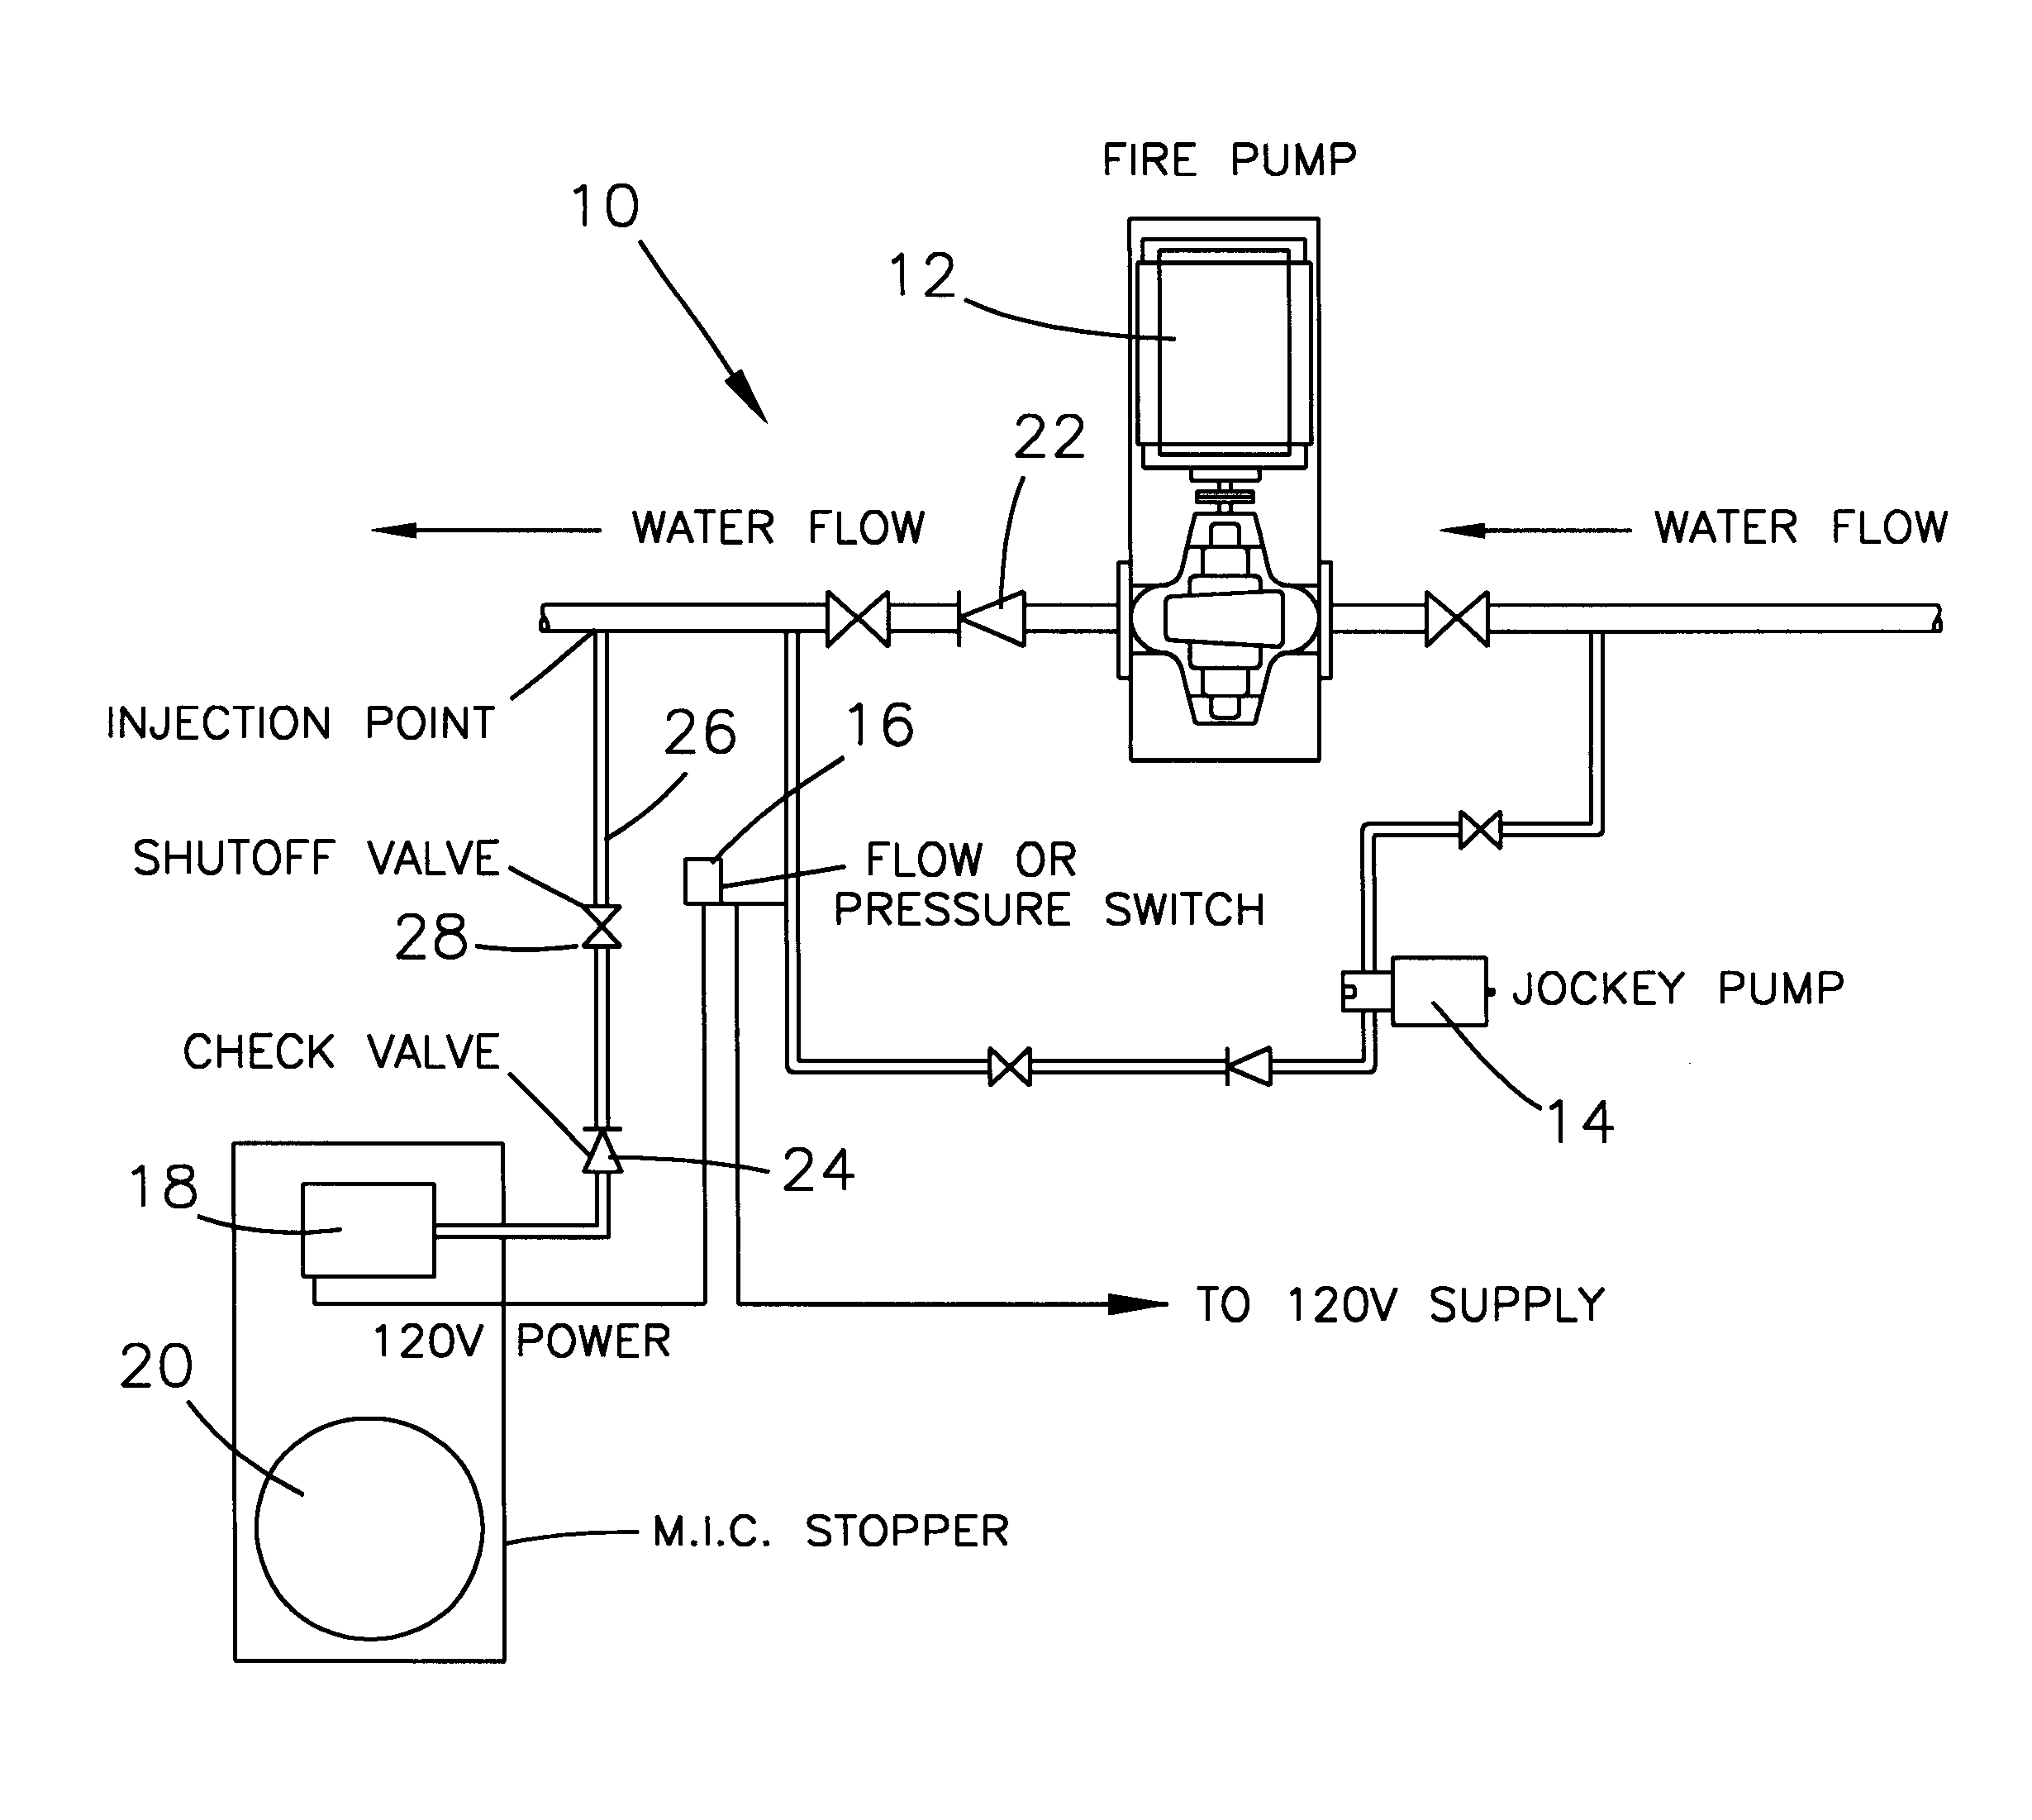 Wiring Diagram Jockey Pump : Water pressure tank diagram free engine image for